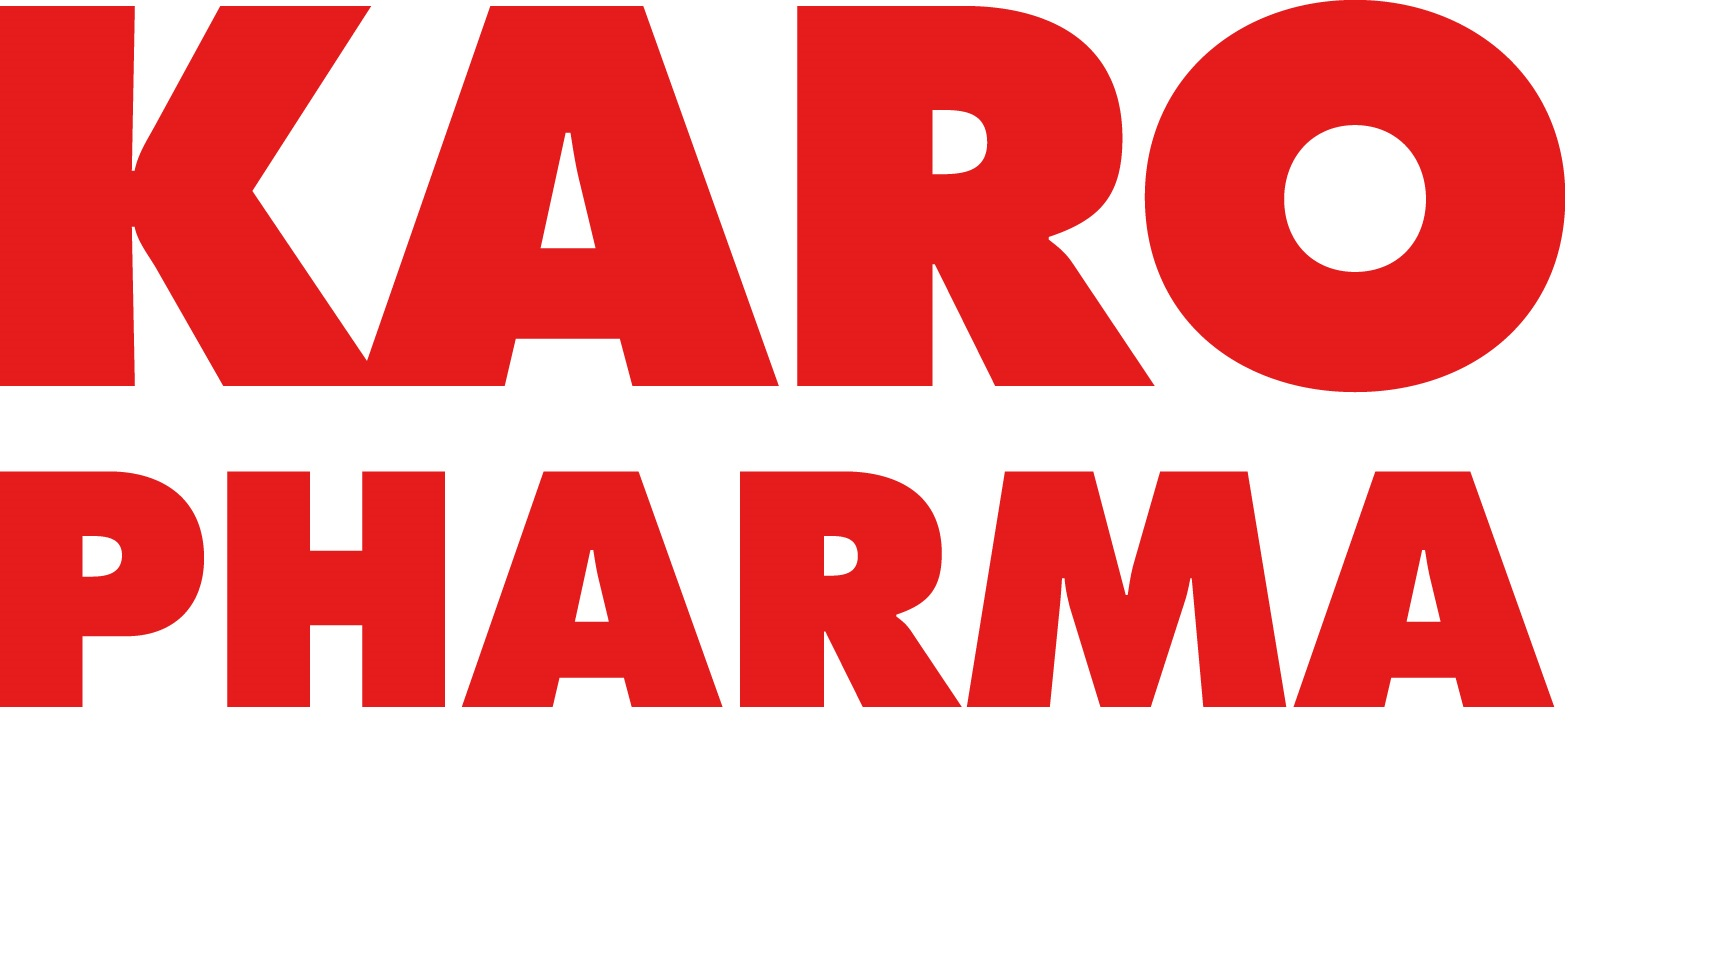 Karo Pharma Corporate Logo - klar_1552387562